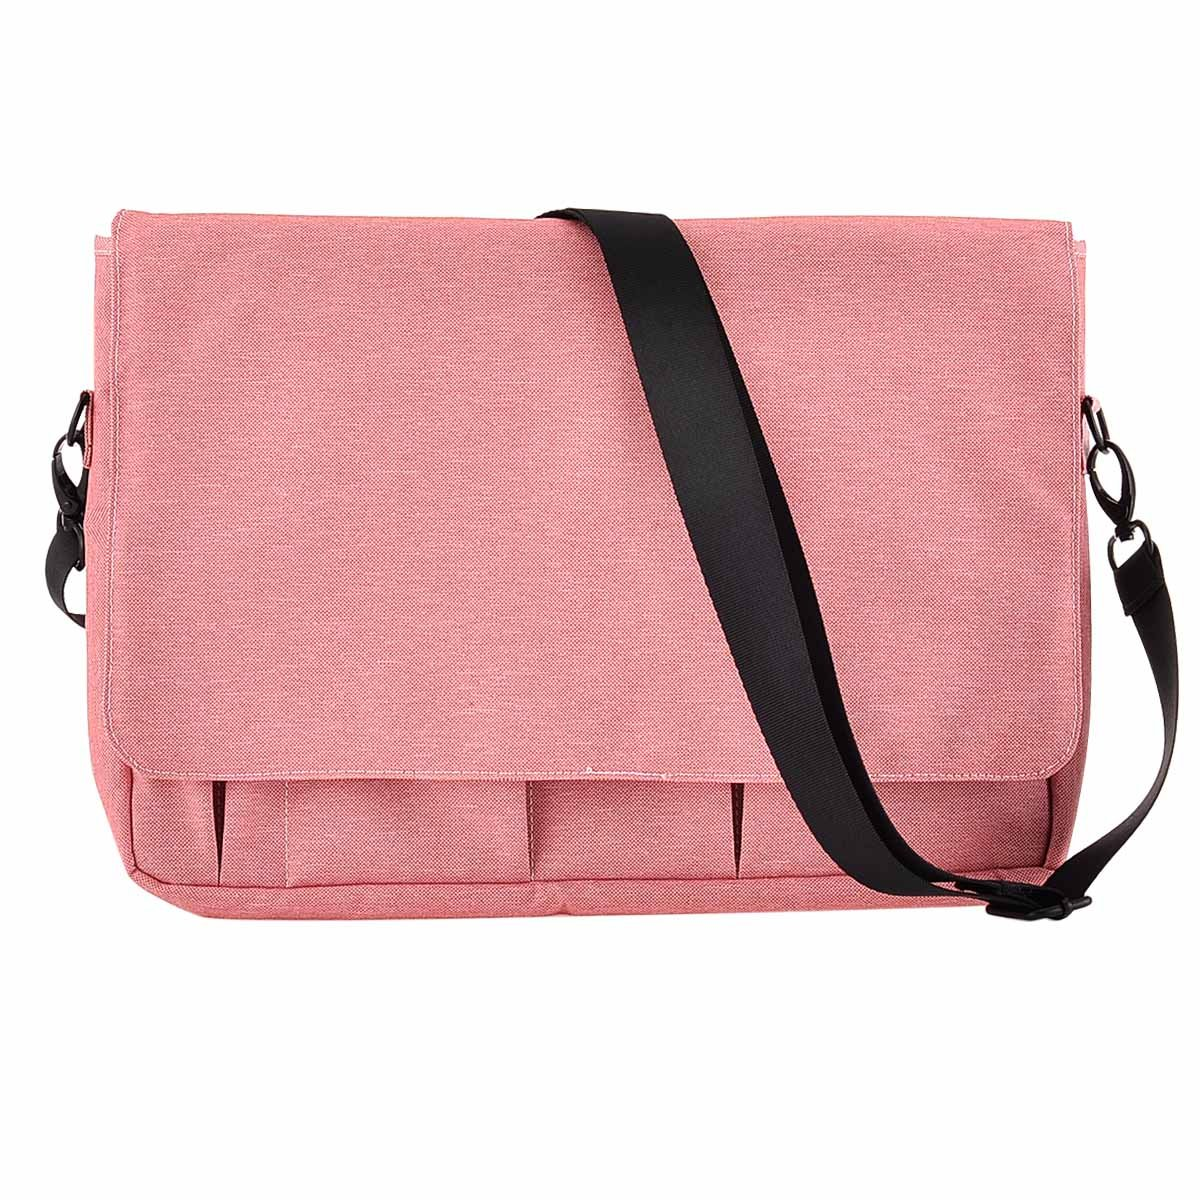 XeYOU Polyester Fabric Water-Resistant Laptop Shoulder Briefcase Bag for 13-13.3 Inch MacBook Pro, MacBook Air, Ultrabook Netbook Tablet (Pink)